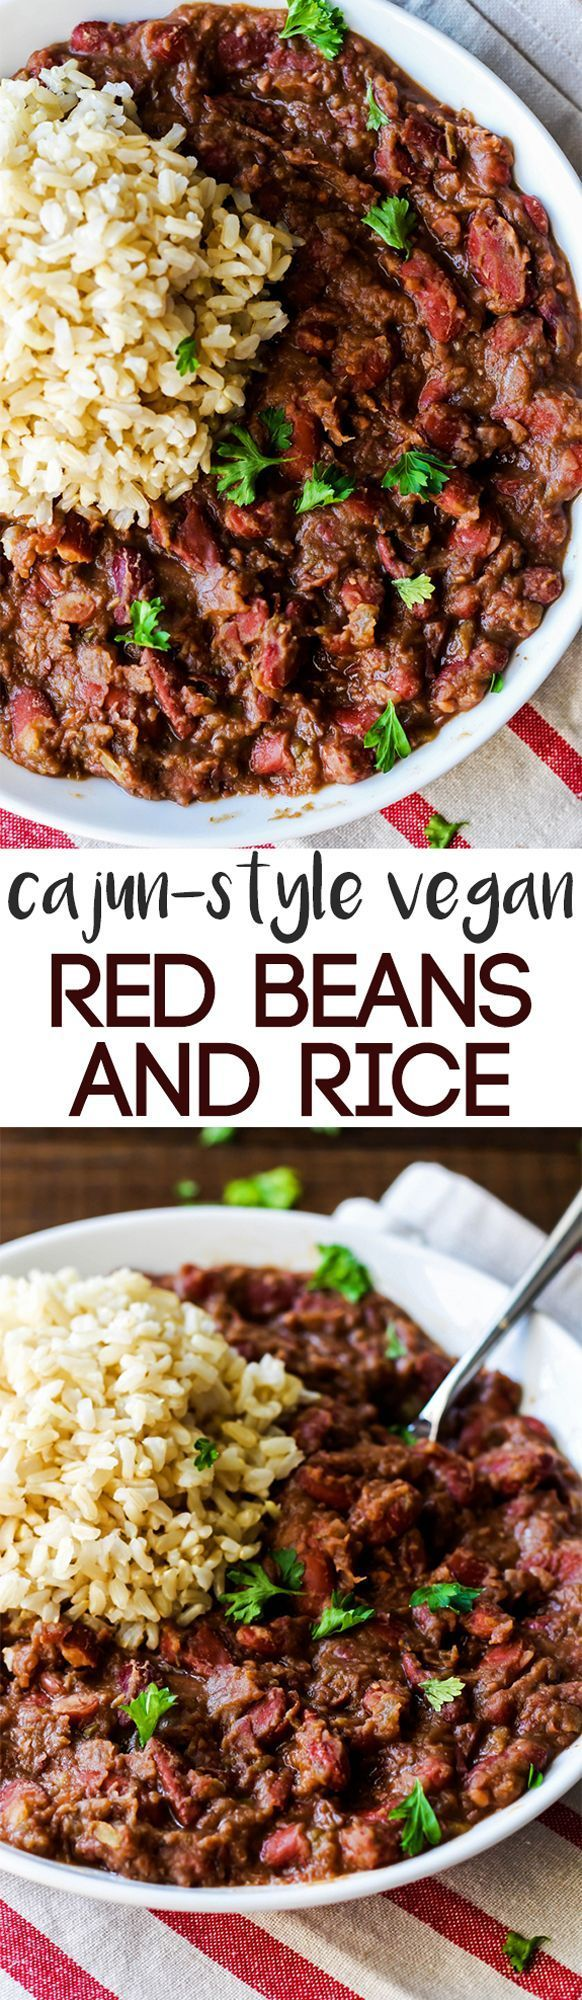 ... red beans and rice recipe vegan creole recipes vegan red potato